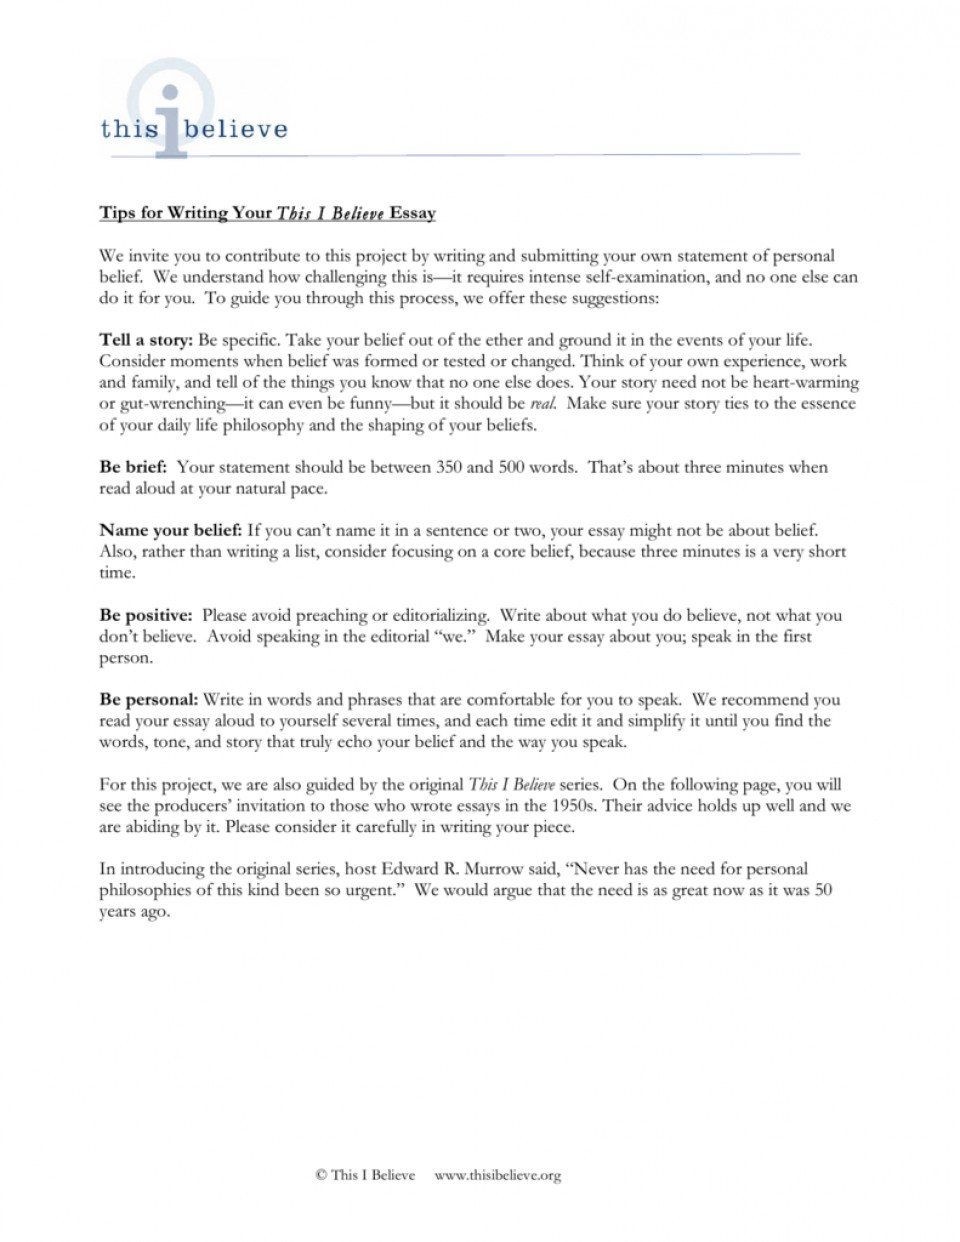 005 Essay Example How To Write This I Believe 008807221 1 Fantastic A Things On What 960